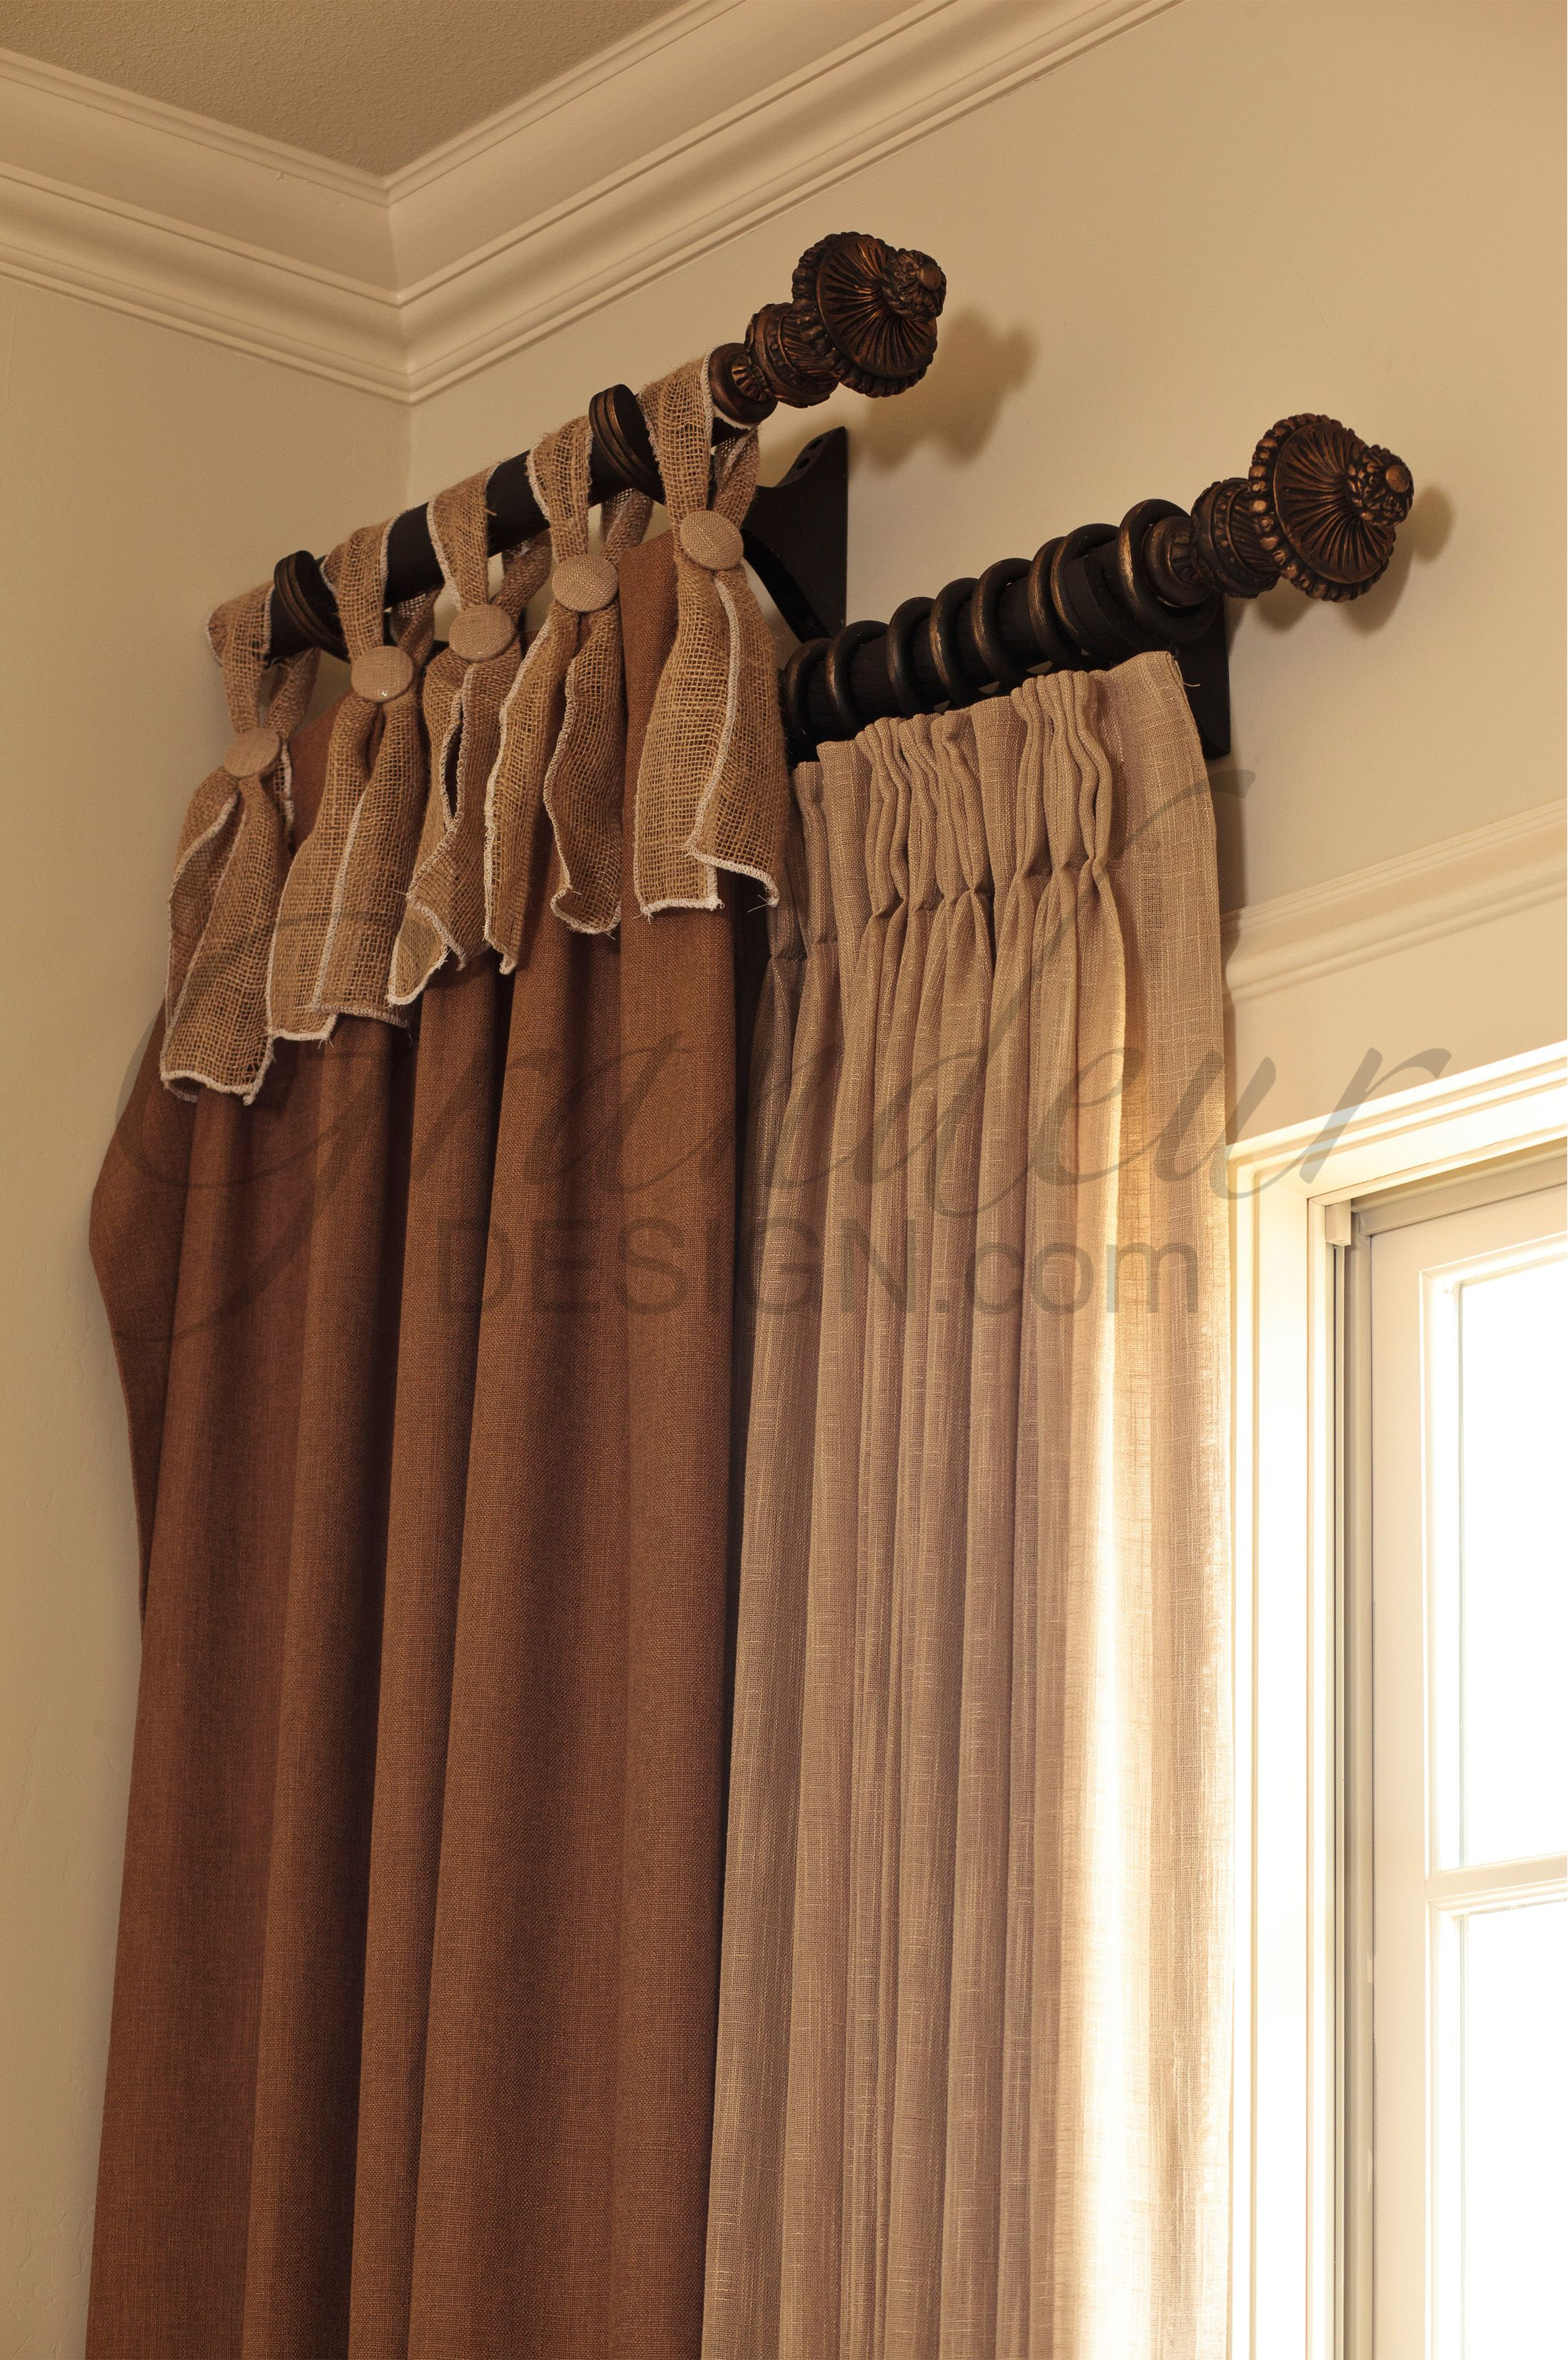 Image Of Best Types Of Curtain Rods Sidelight Curtains Curtain Rods Small Curtain Rods